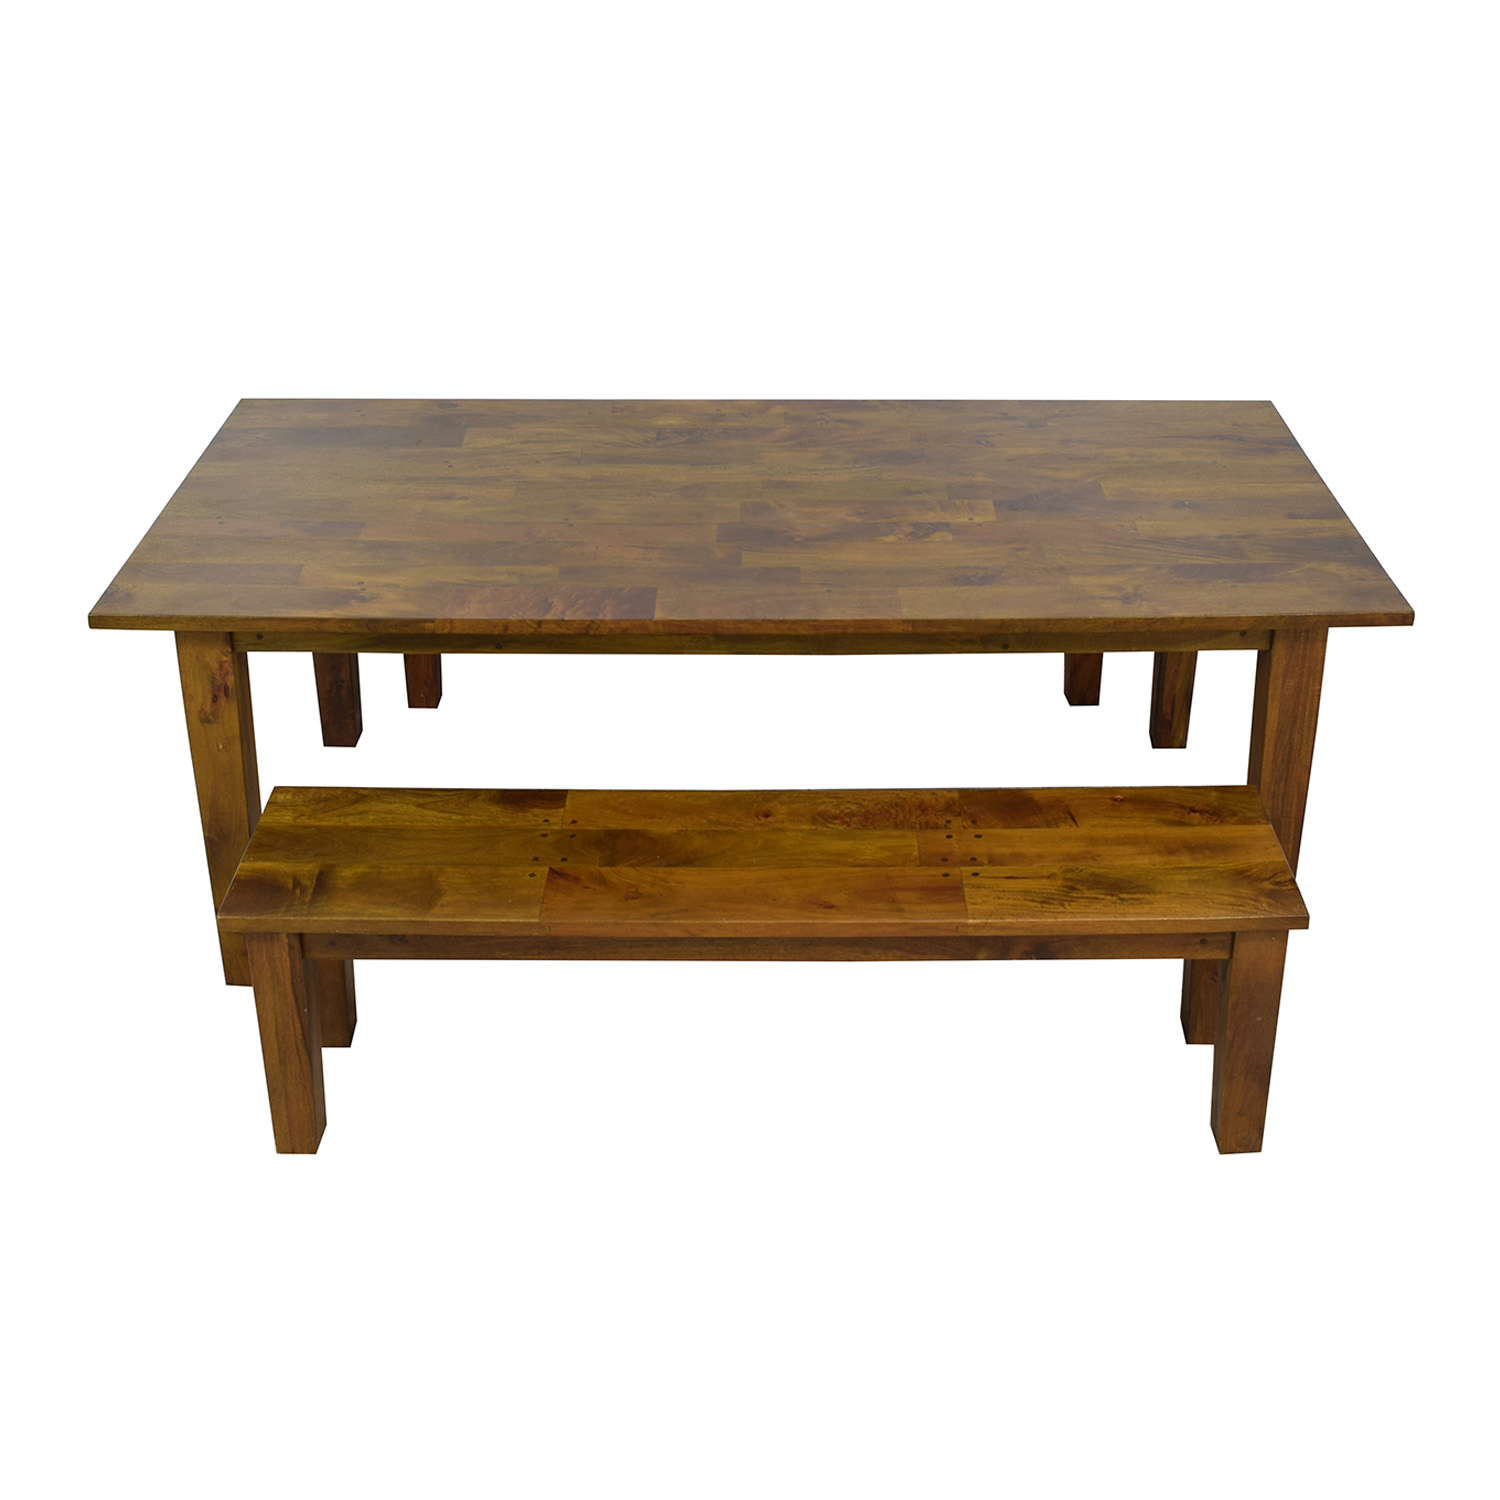 Crate & Barrel Crate & Barrel Wood Table with Two Benches brown